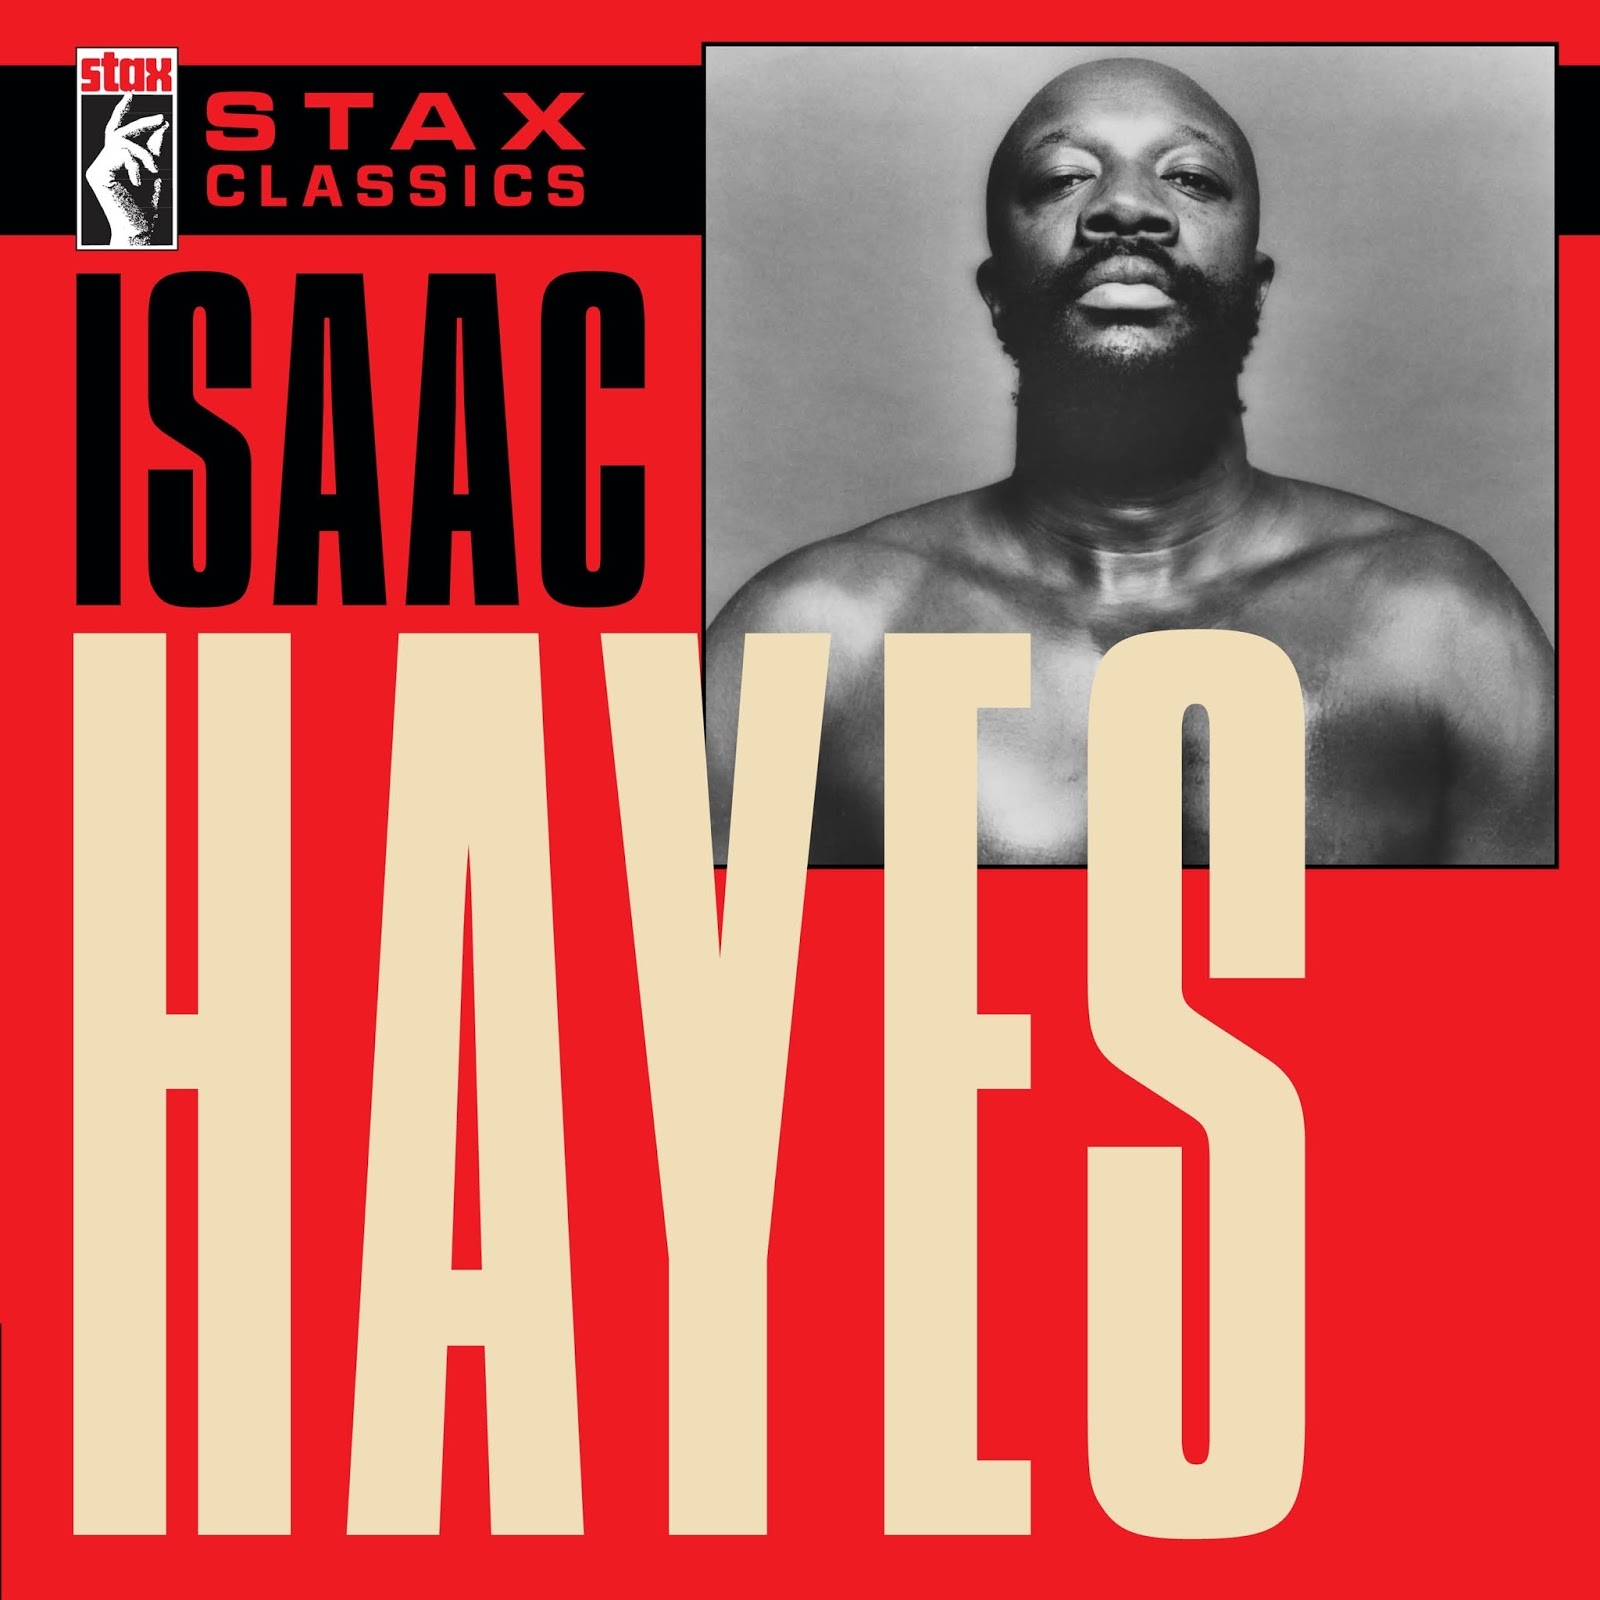 Isaac Hayes Movies And Tv Shows Complete that devil music: cd review: isaac hayes' stax classics (2017)